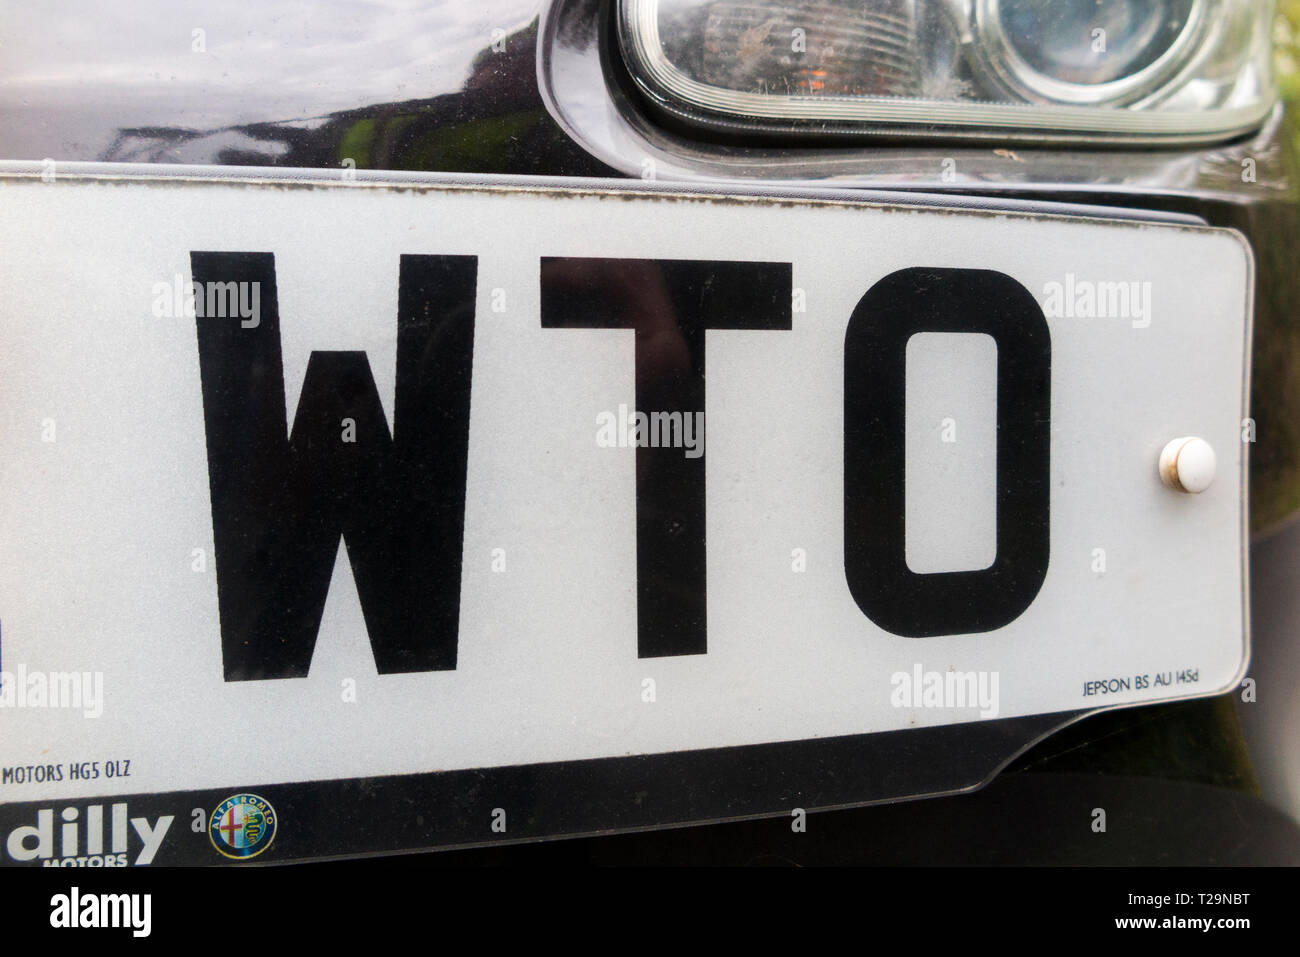 Car number registration plate which includes the letters WTO which could stand for world trade organisation. (106) Stock Photo